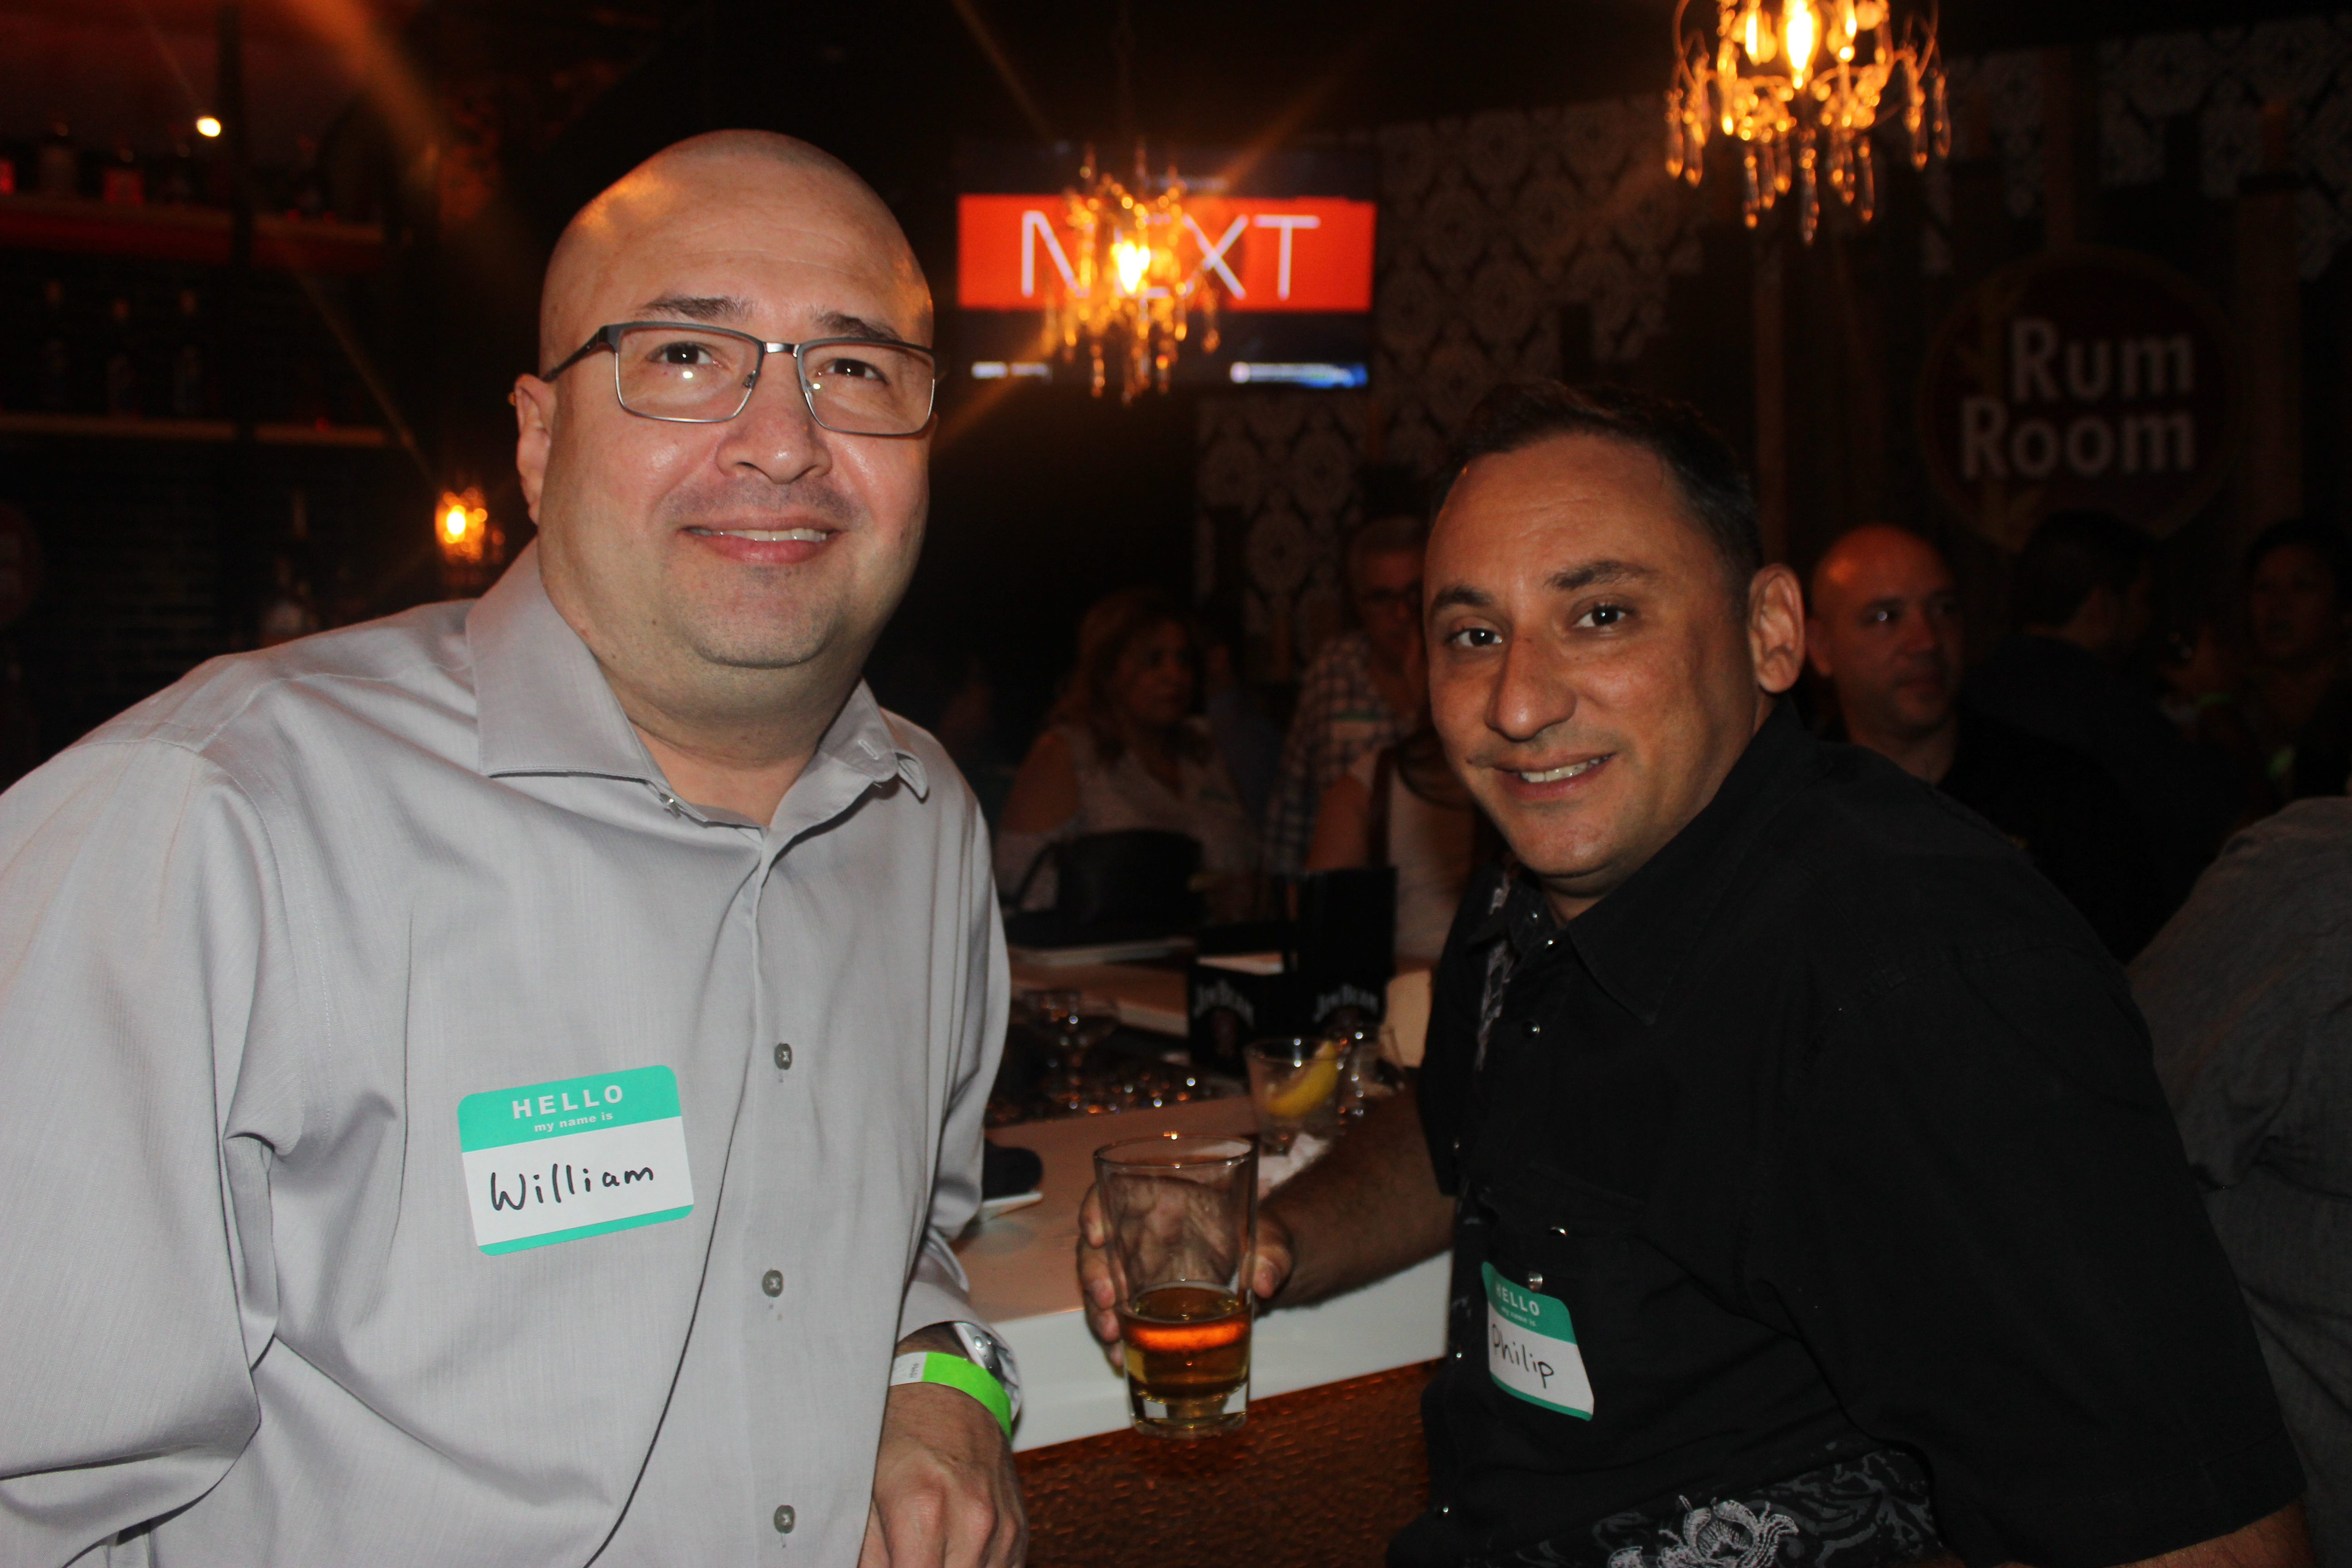 Philip and William, members of the Doral Chamber of Commerce in King's Bowl Business Networking.